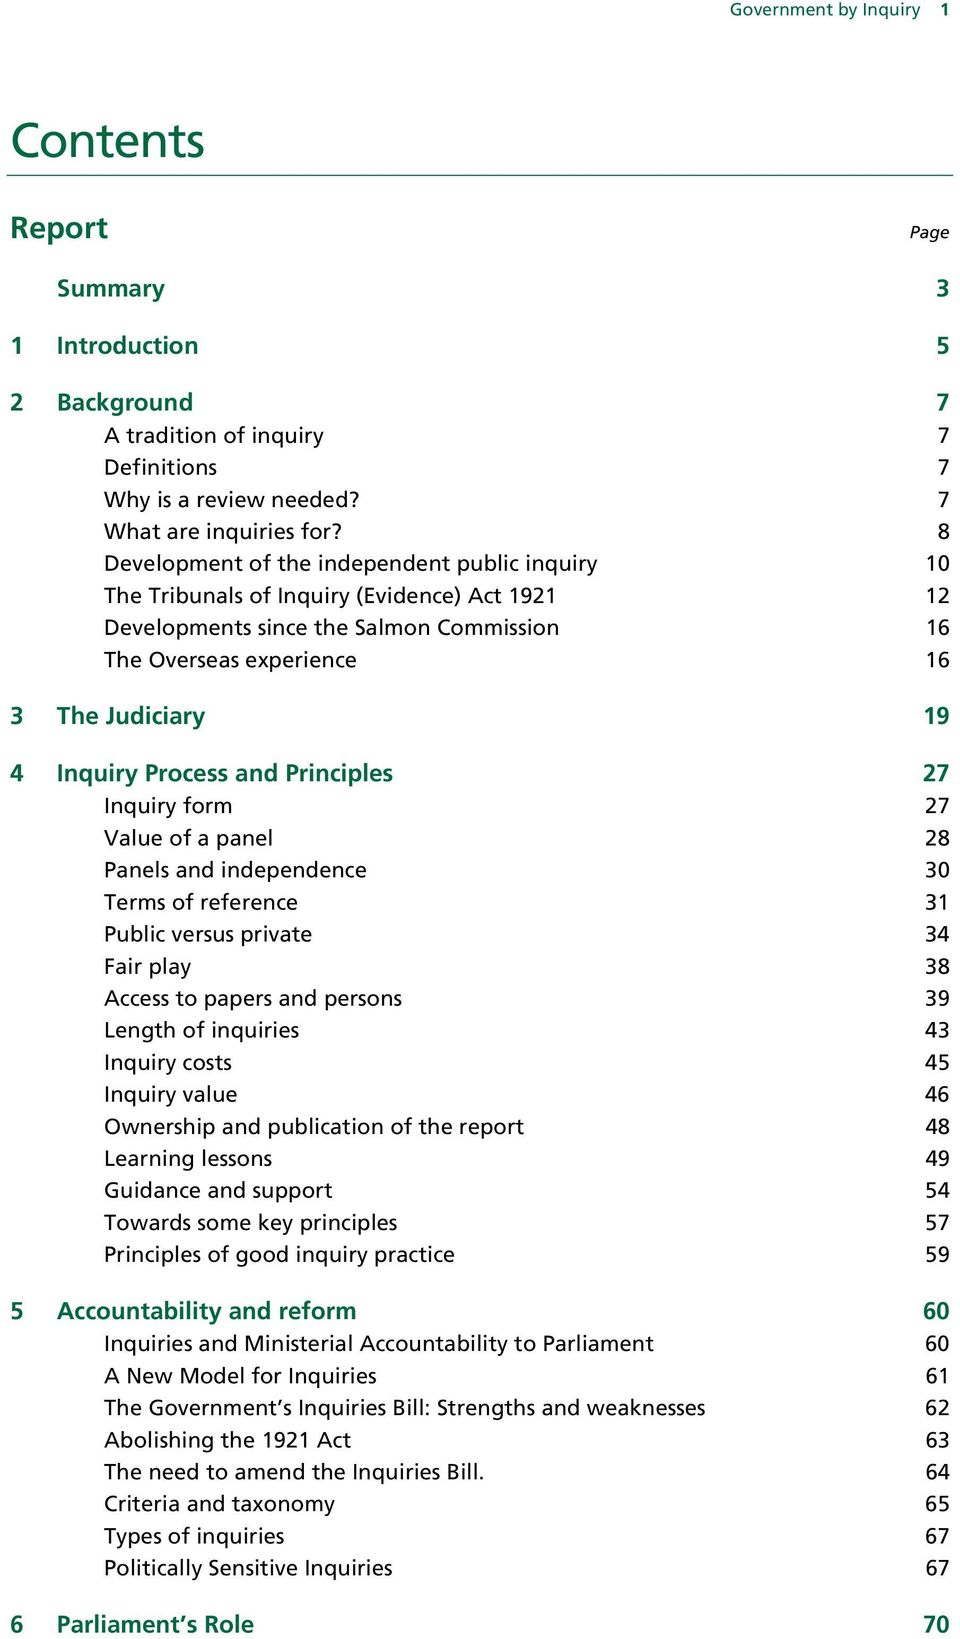 Process and Principles 27 Inquiry form 27 Value of a panel 28 Panels and independence 30 Terms of reference 31 Public versus private 34 Fair play 38 Access to papers and persons 39 Length of